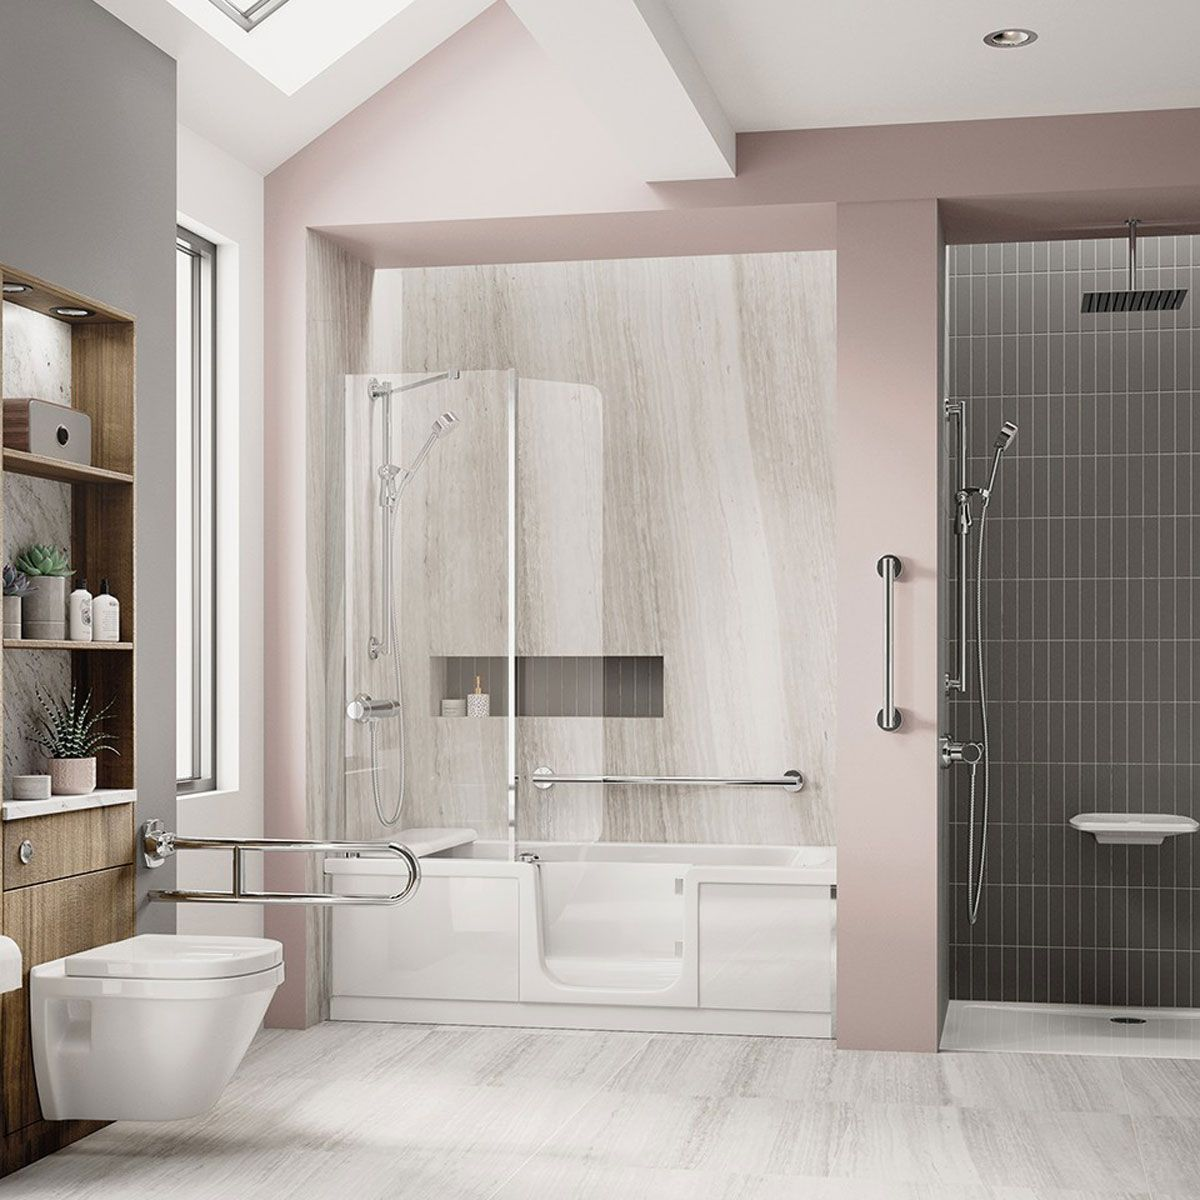 batheeasystylewalkinbath1800x800righthand